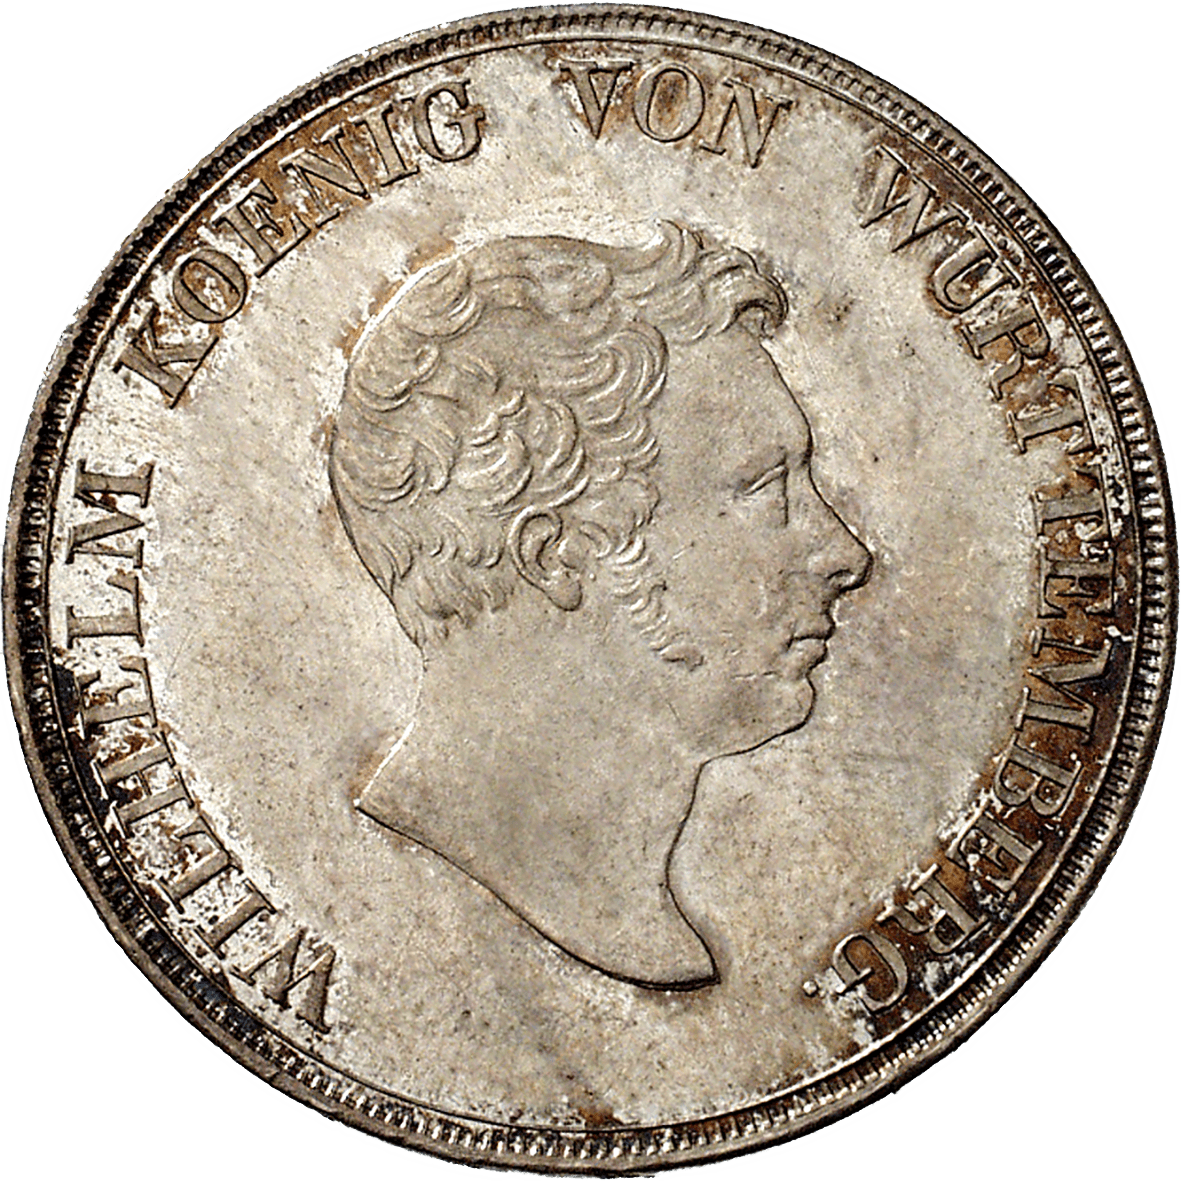 Kingdom of Württemberg, Wilhelm I, Crown Taler 1825 (obverse)